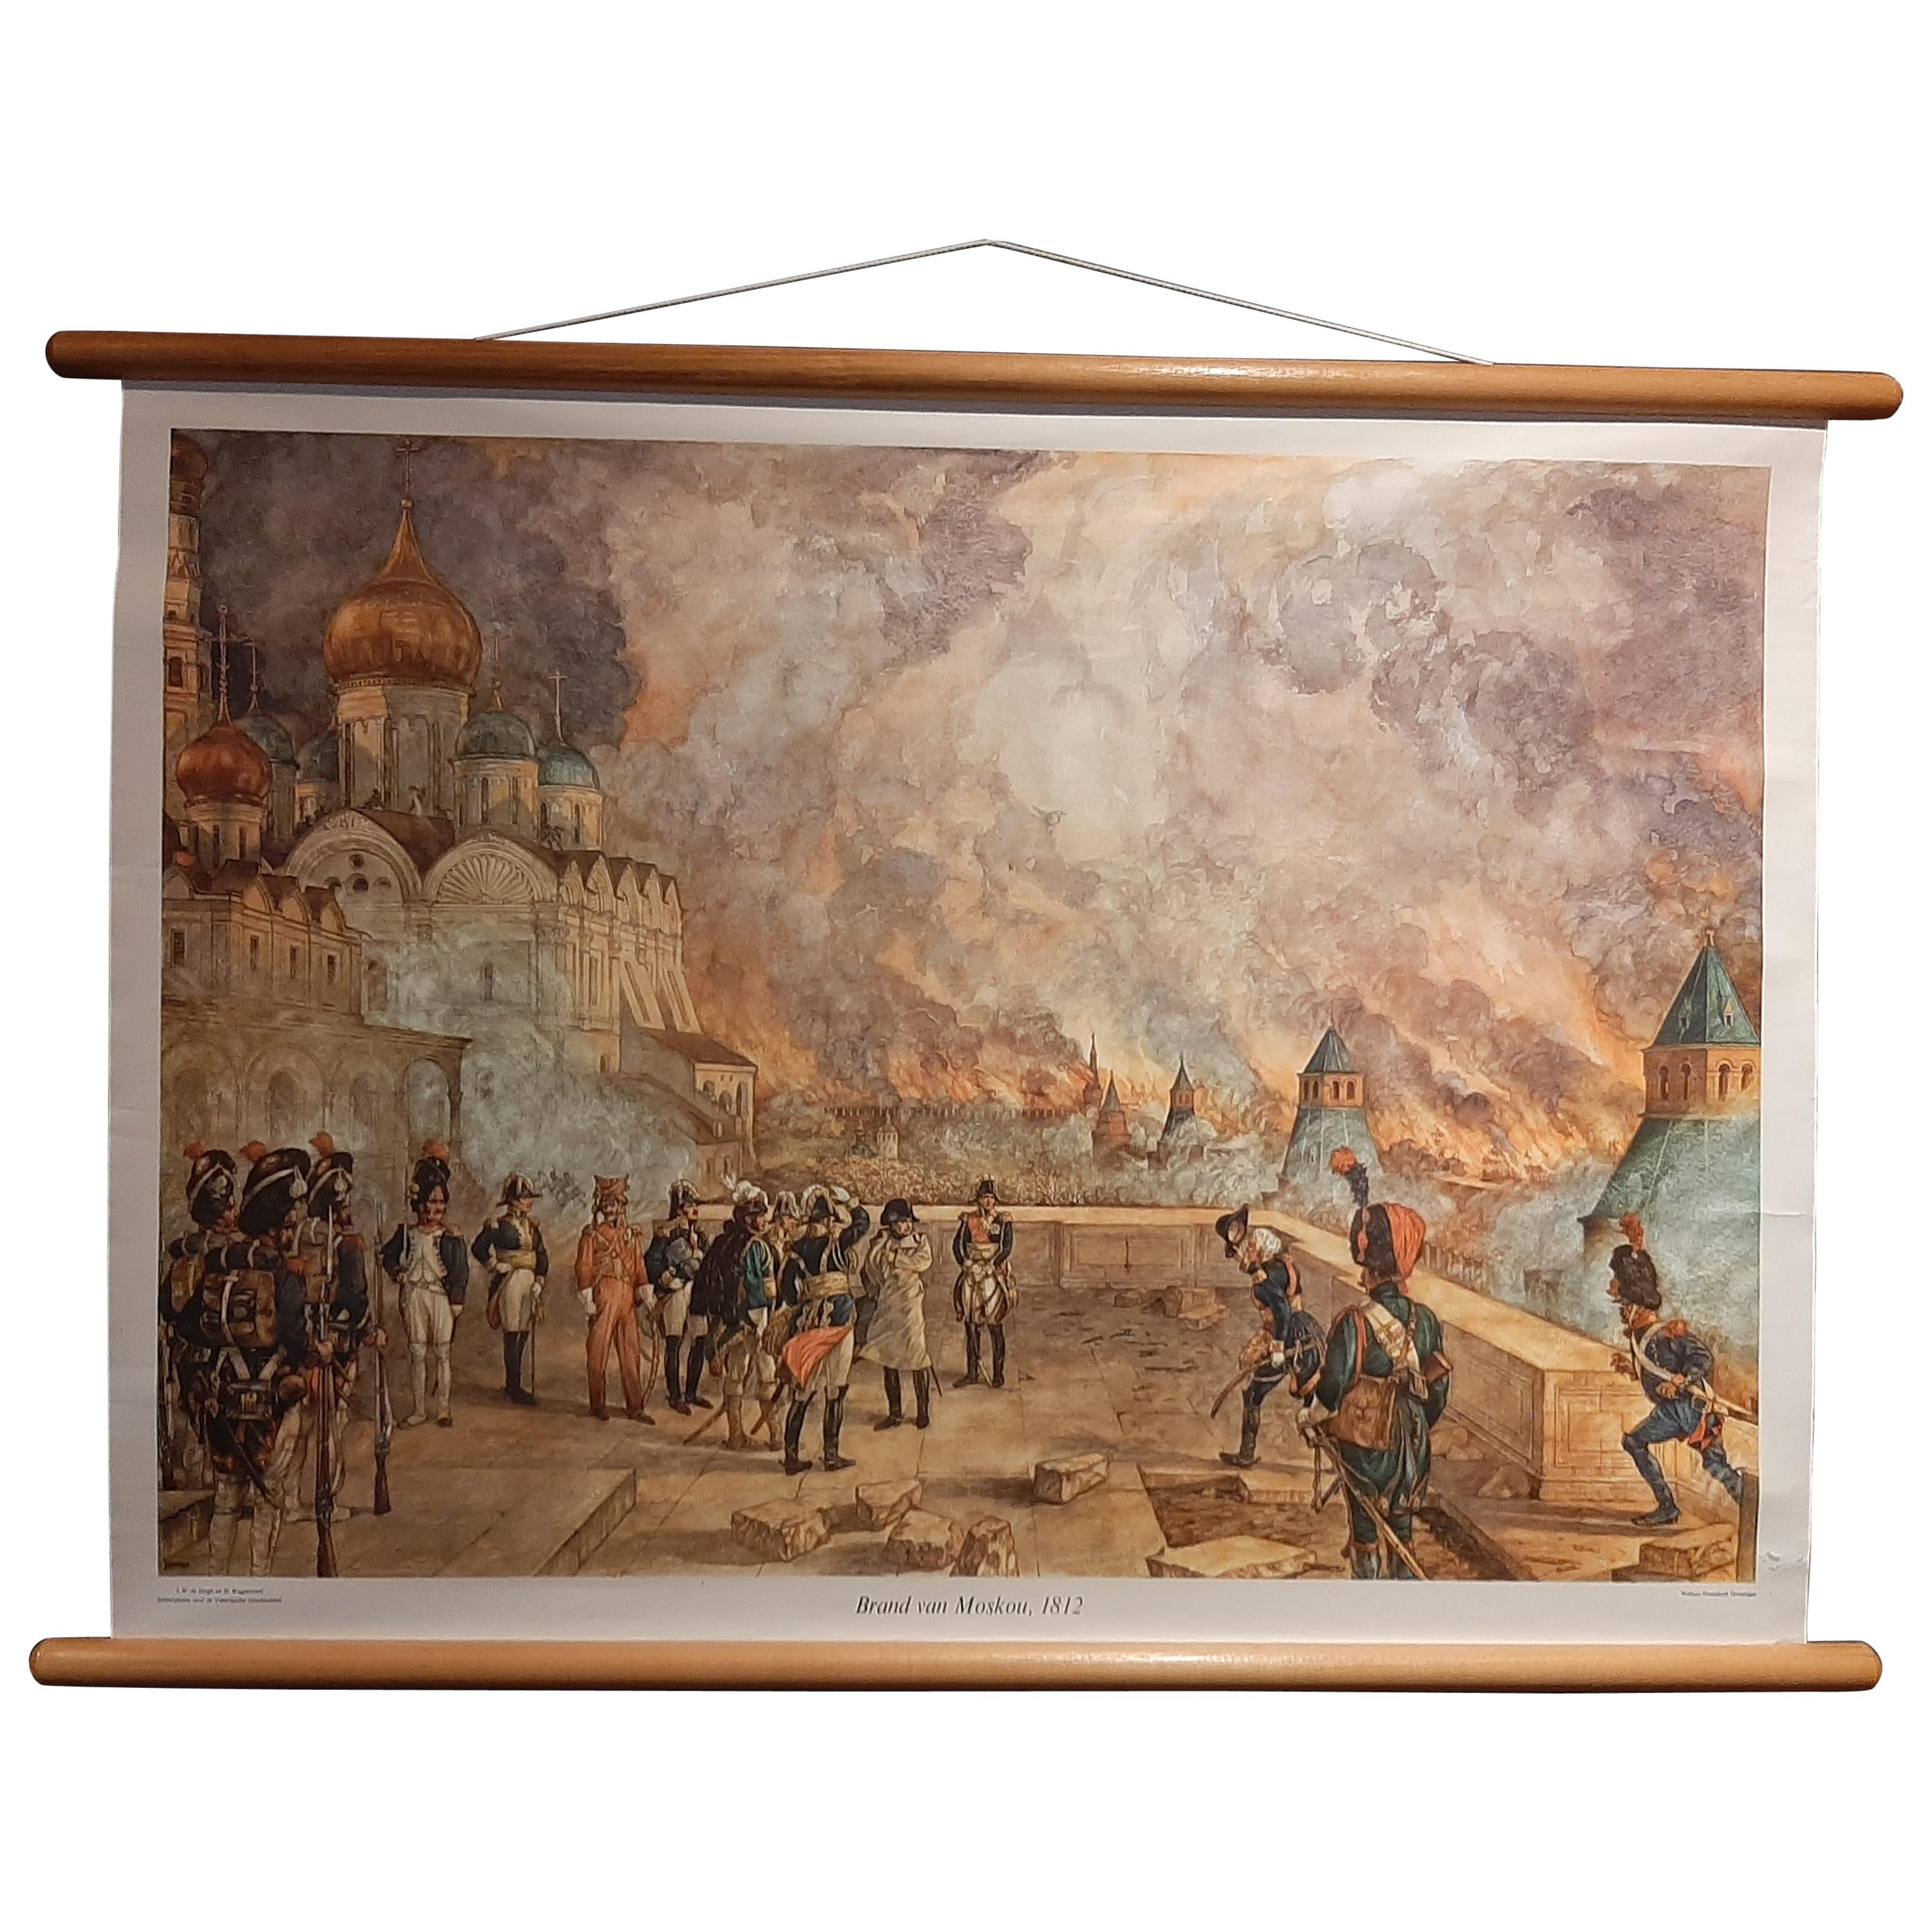 Vintage Wall Chart of the Fire of Moscow by Isings 'circa 1950'